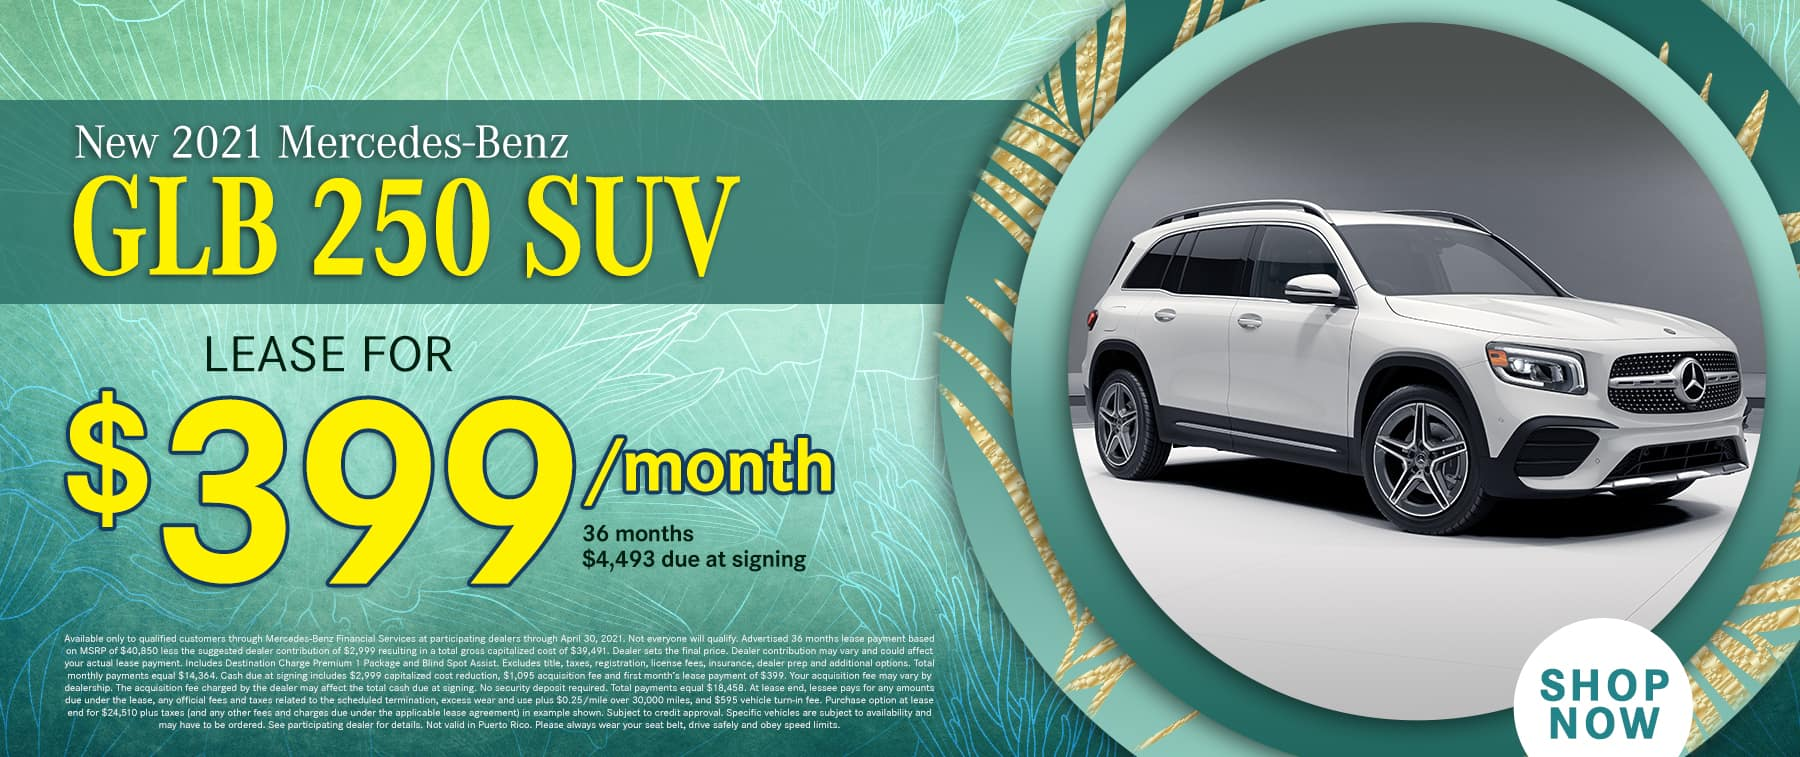 2021 GLB 250 suv lease for $399